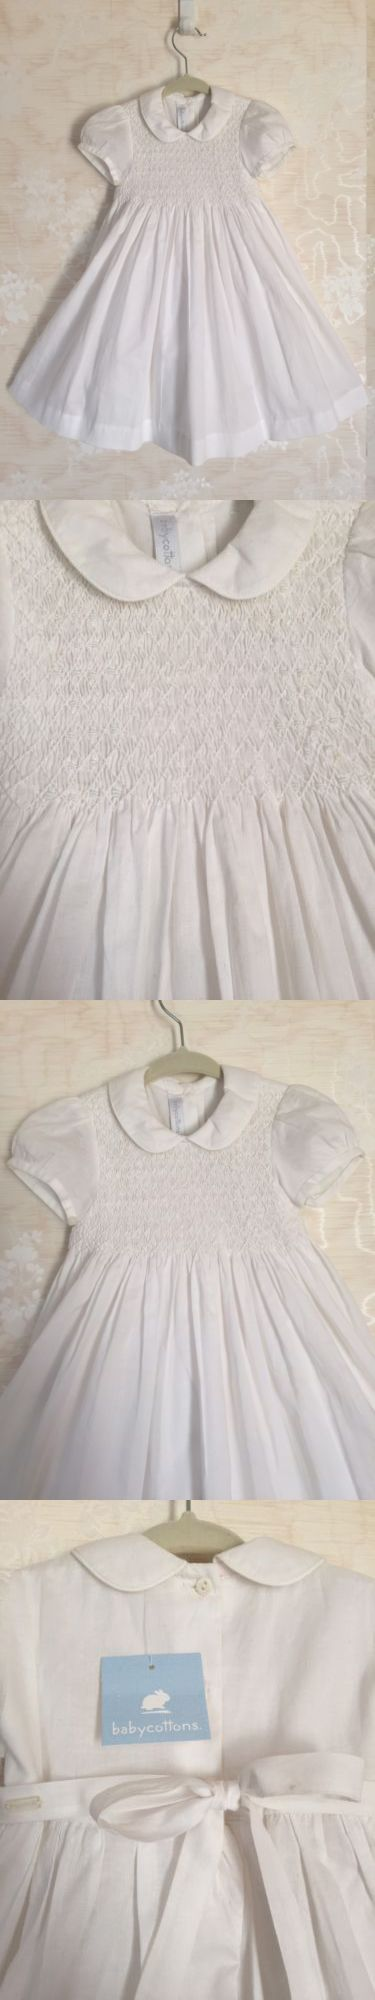 Dresses 163351: Nwt Baby Cottons Toddler Girls Smocked Dress Short Sleeve White Sz 18 Mos $79 -> BUY IT NOW ONLY: $34.99 on eBay!